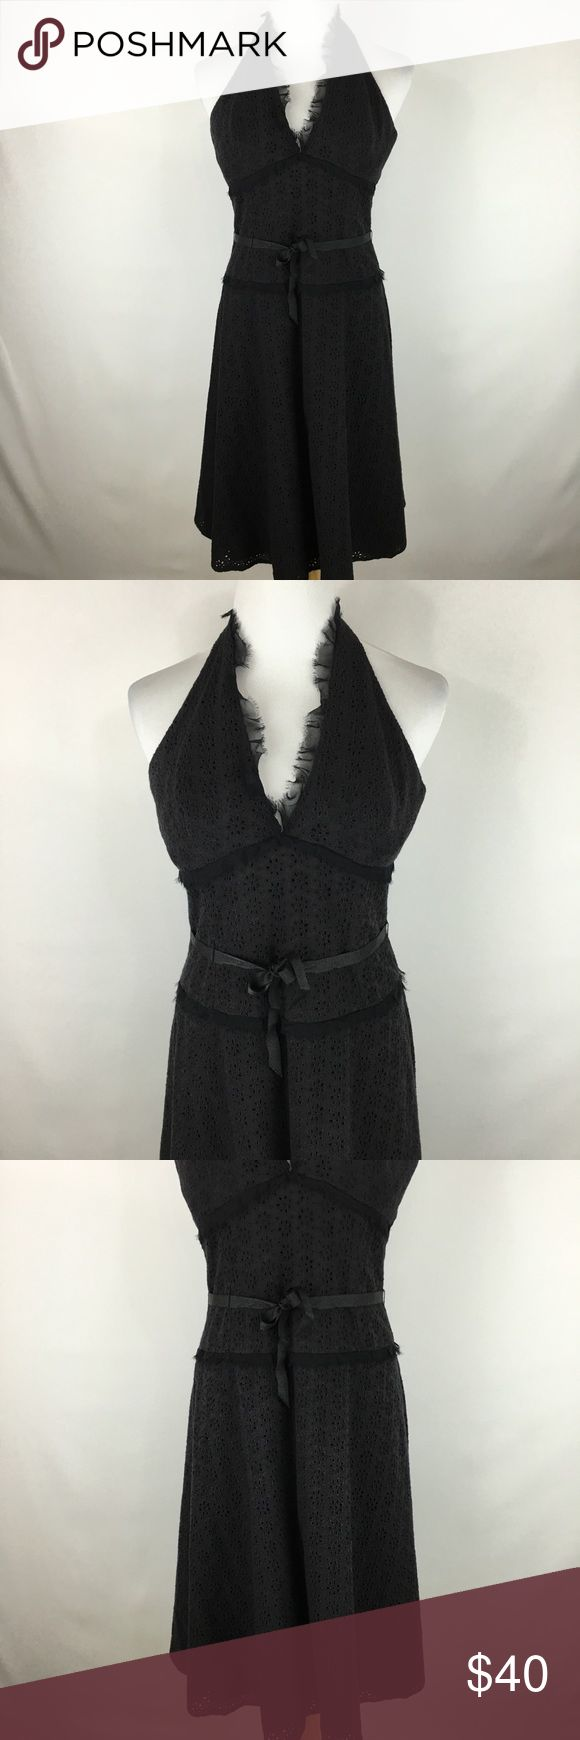 Laundry by Shelli Segal eyelet halter dress sz 4 Laundry by Shelli Segal eyelet halter dress sz 4. Gently worn in great condition. Laundry By Shelli Segal Dresses Midi